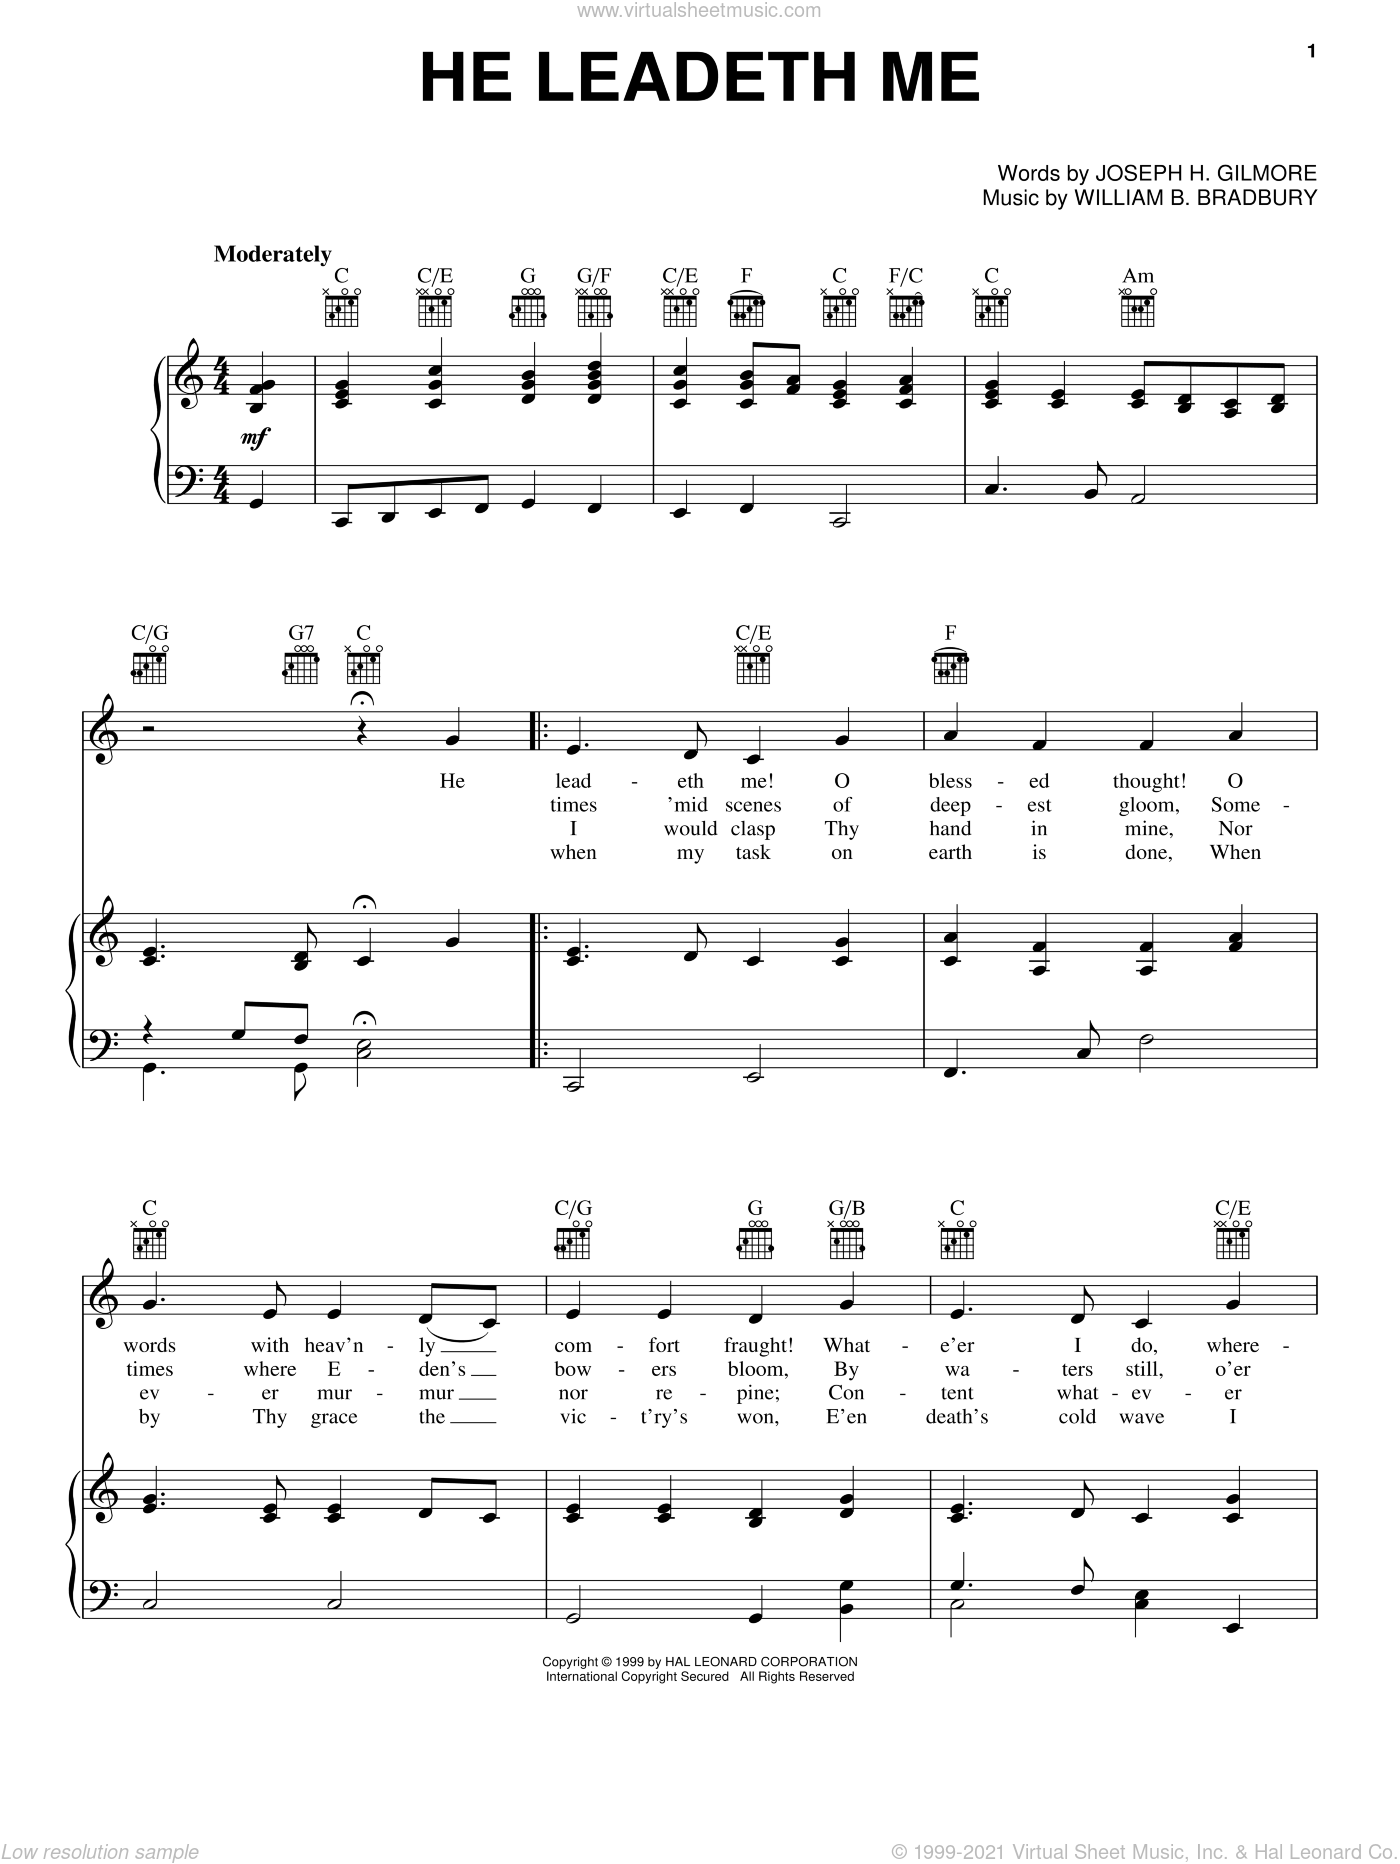 He Leadeth Me sheet music for voice, piano or guitar by Joseph H. Gilmore and William B. Bradbury